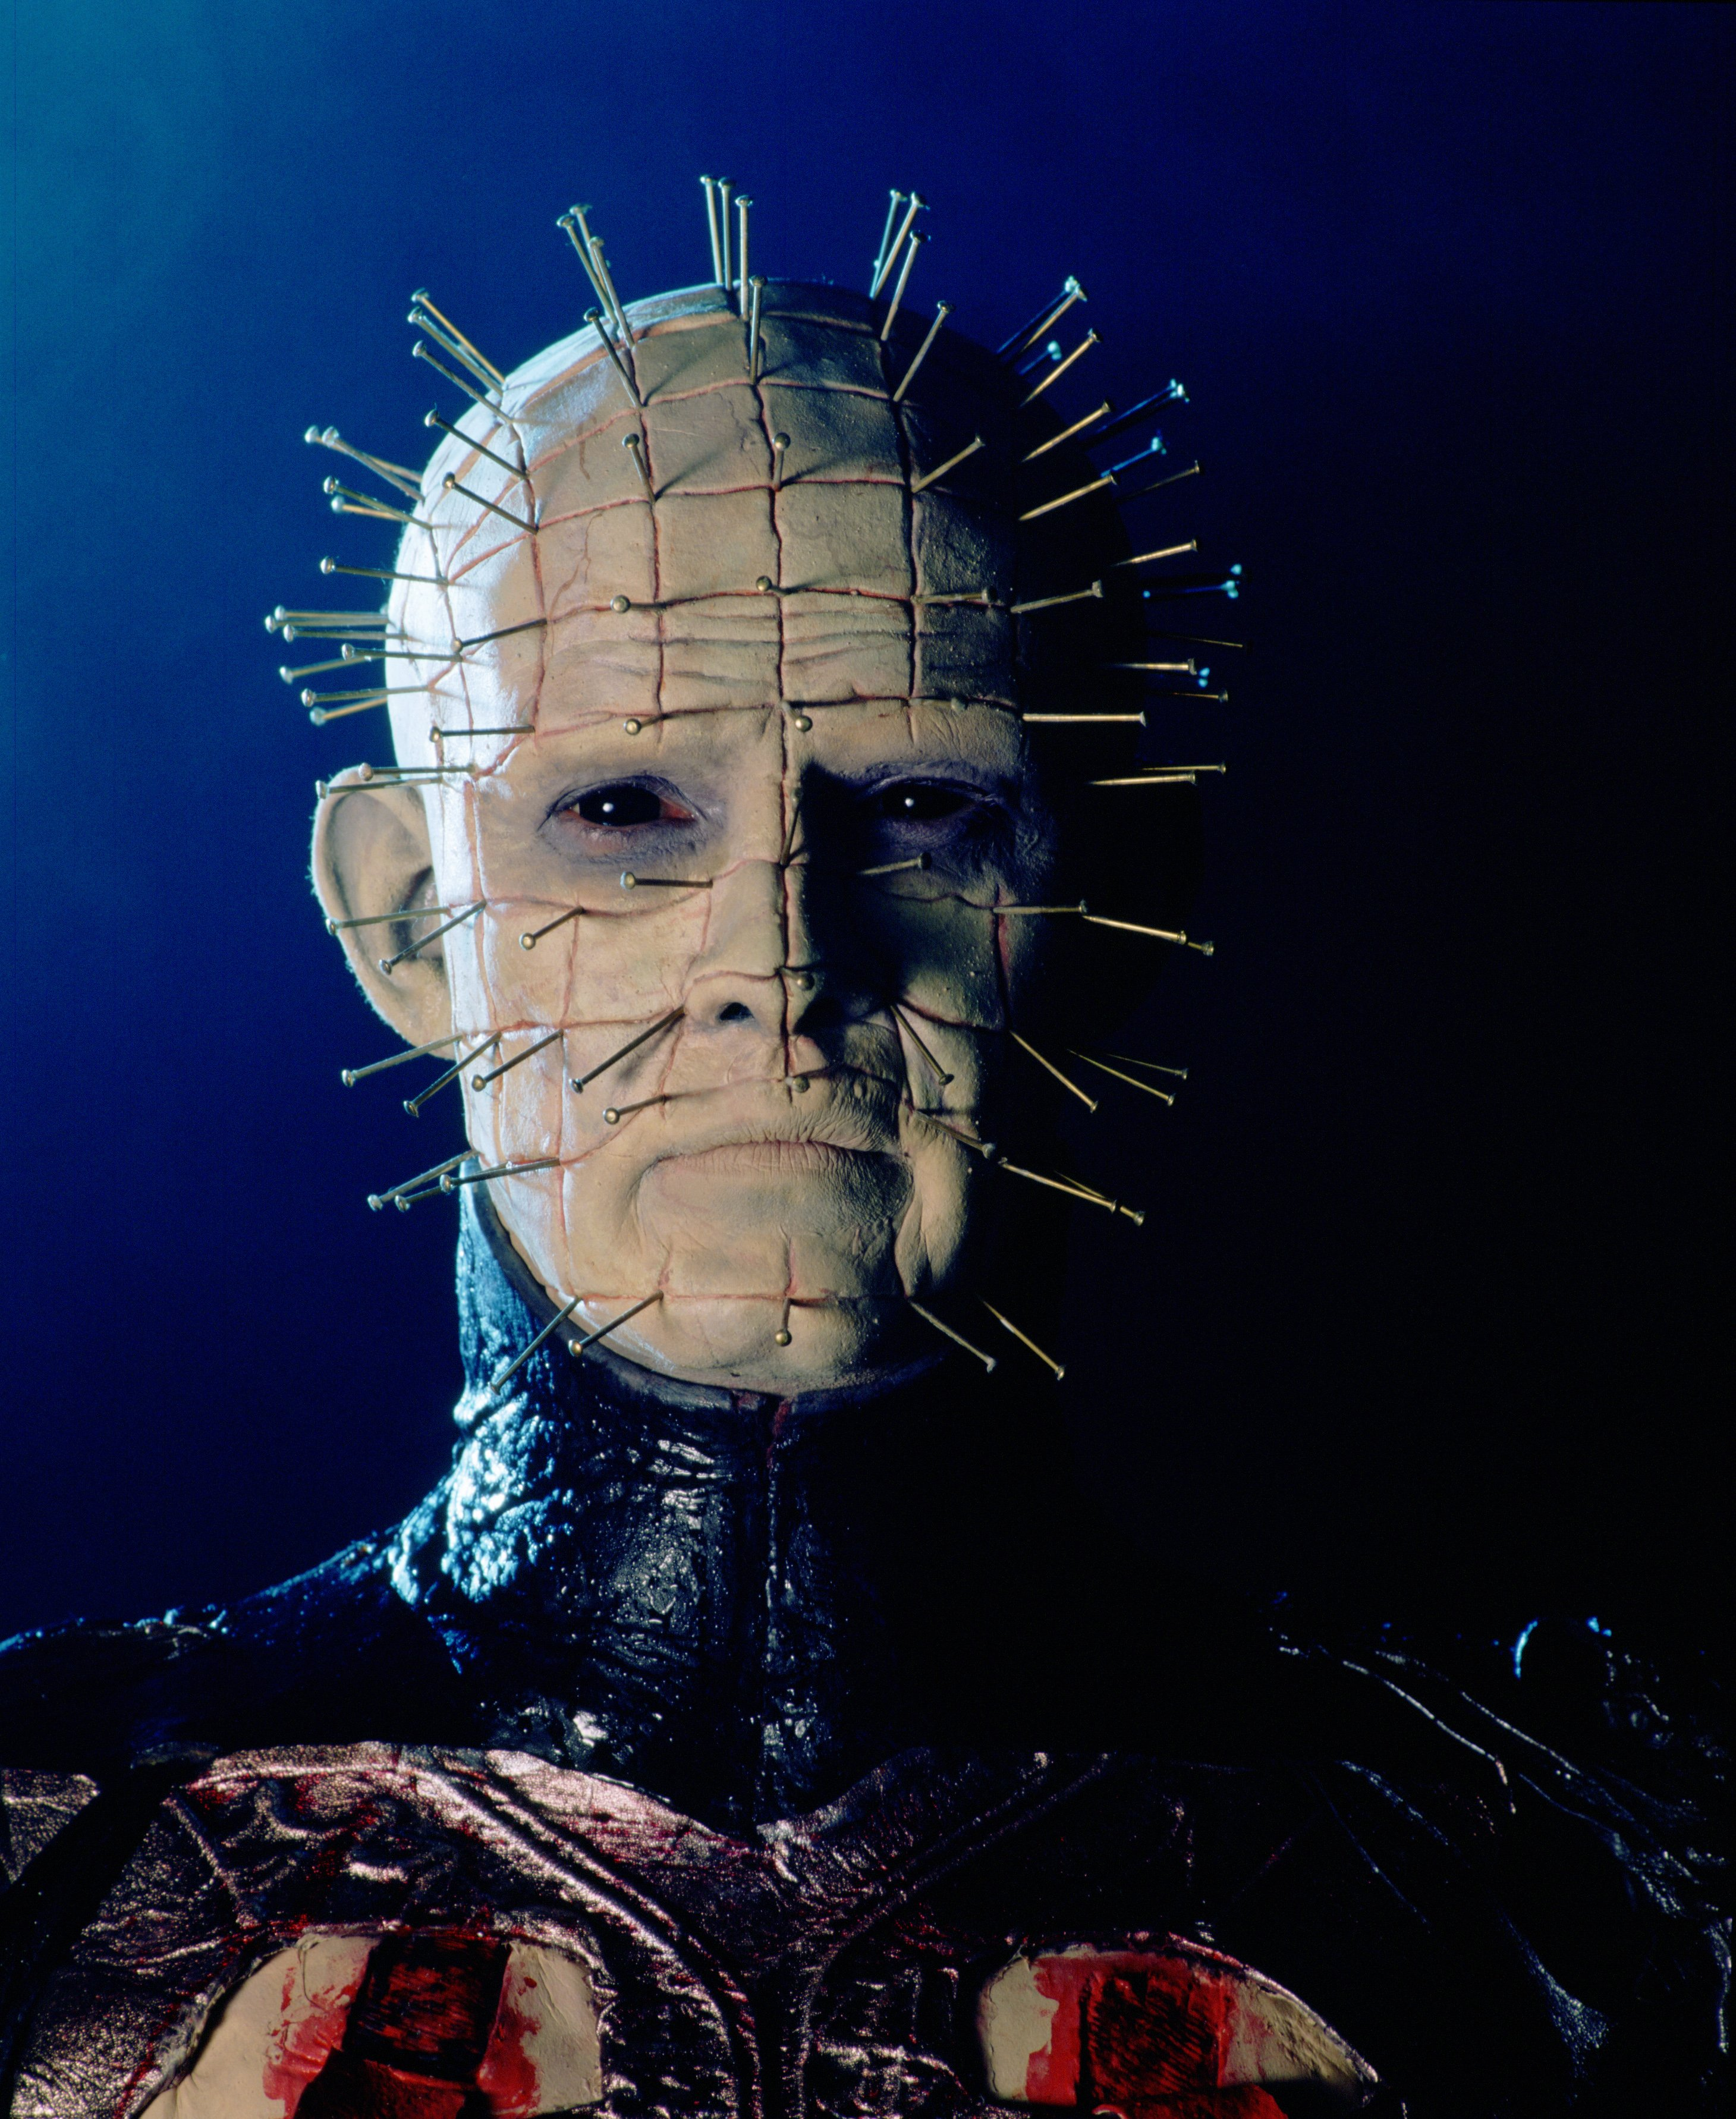 """Doug Bradley as his character Pinhead in """"Hellraiser"""" in 1987. 